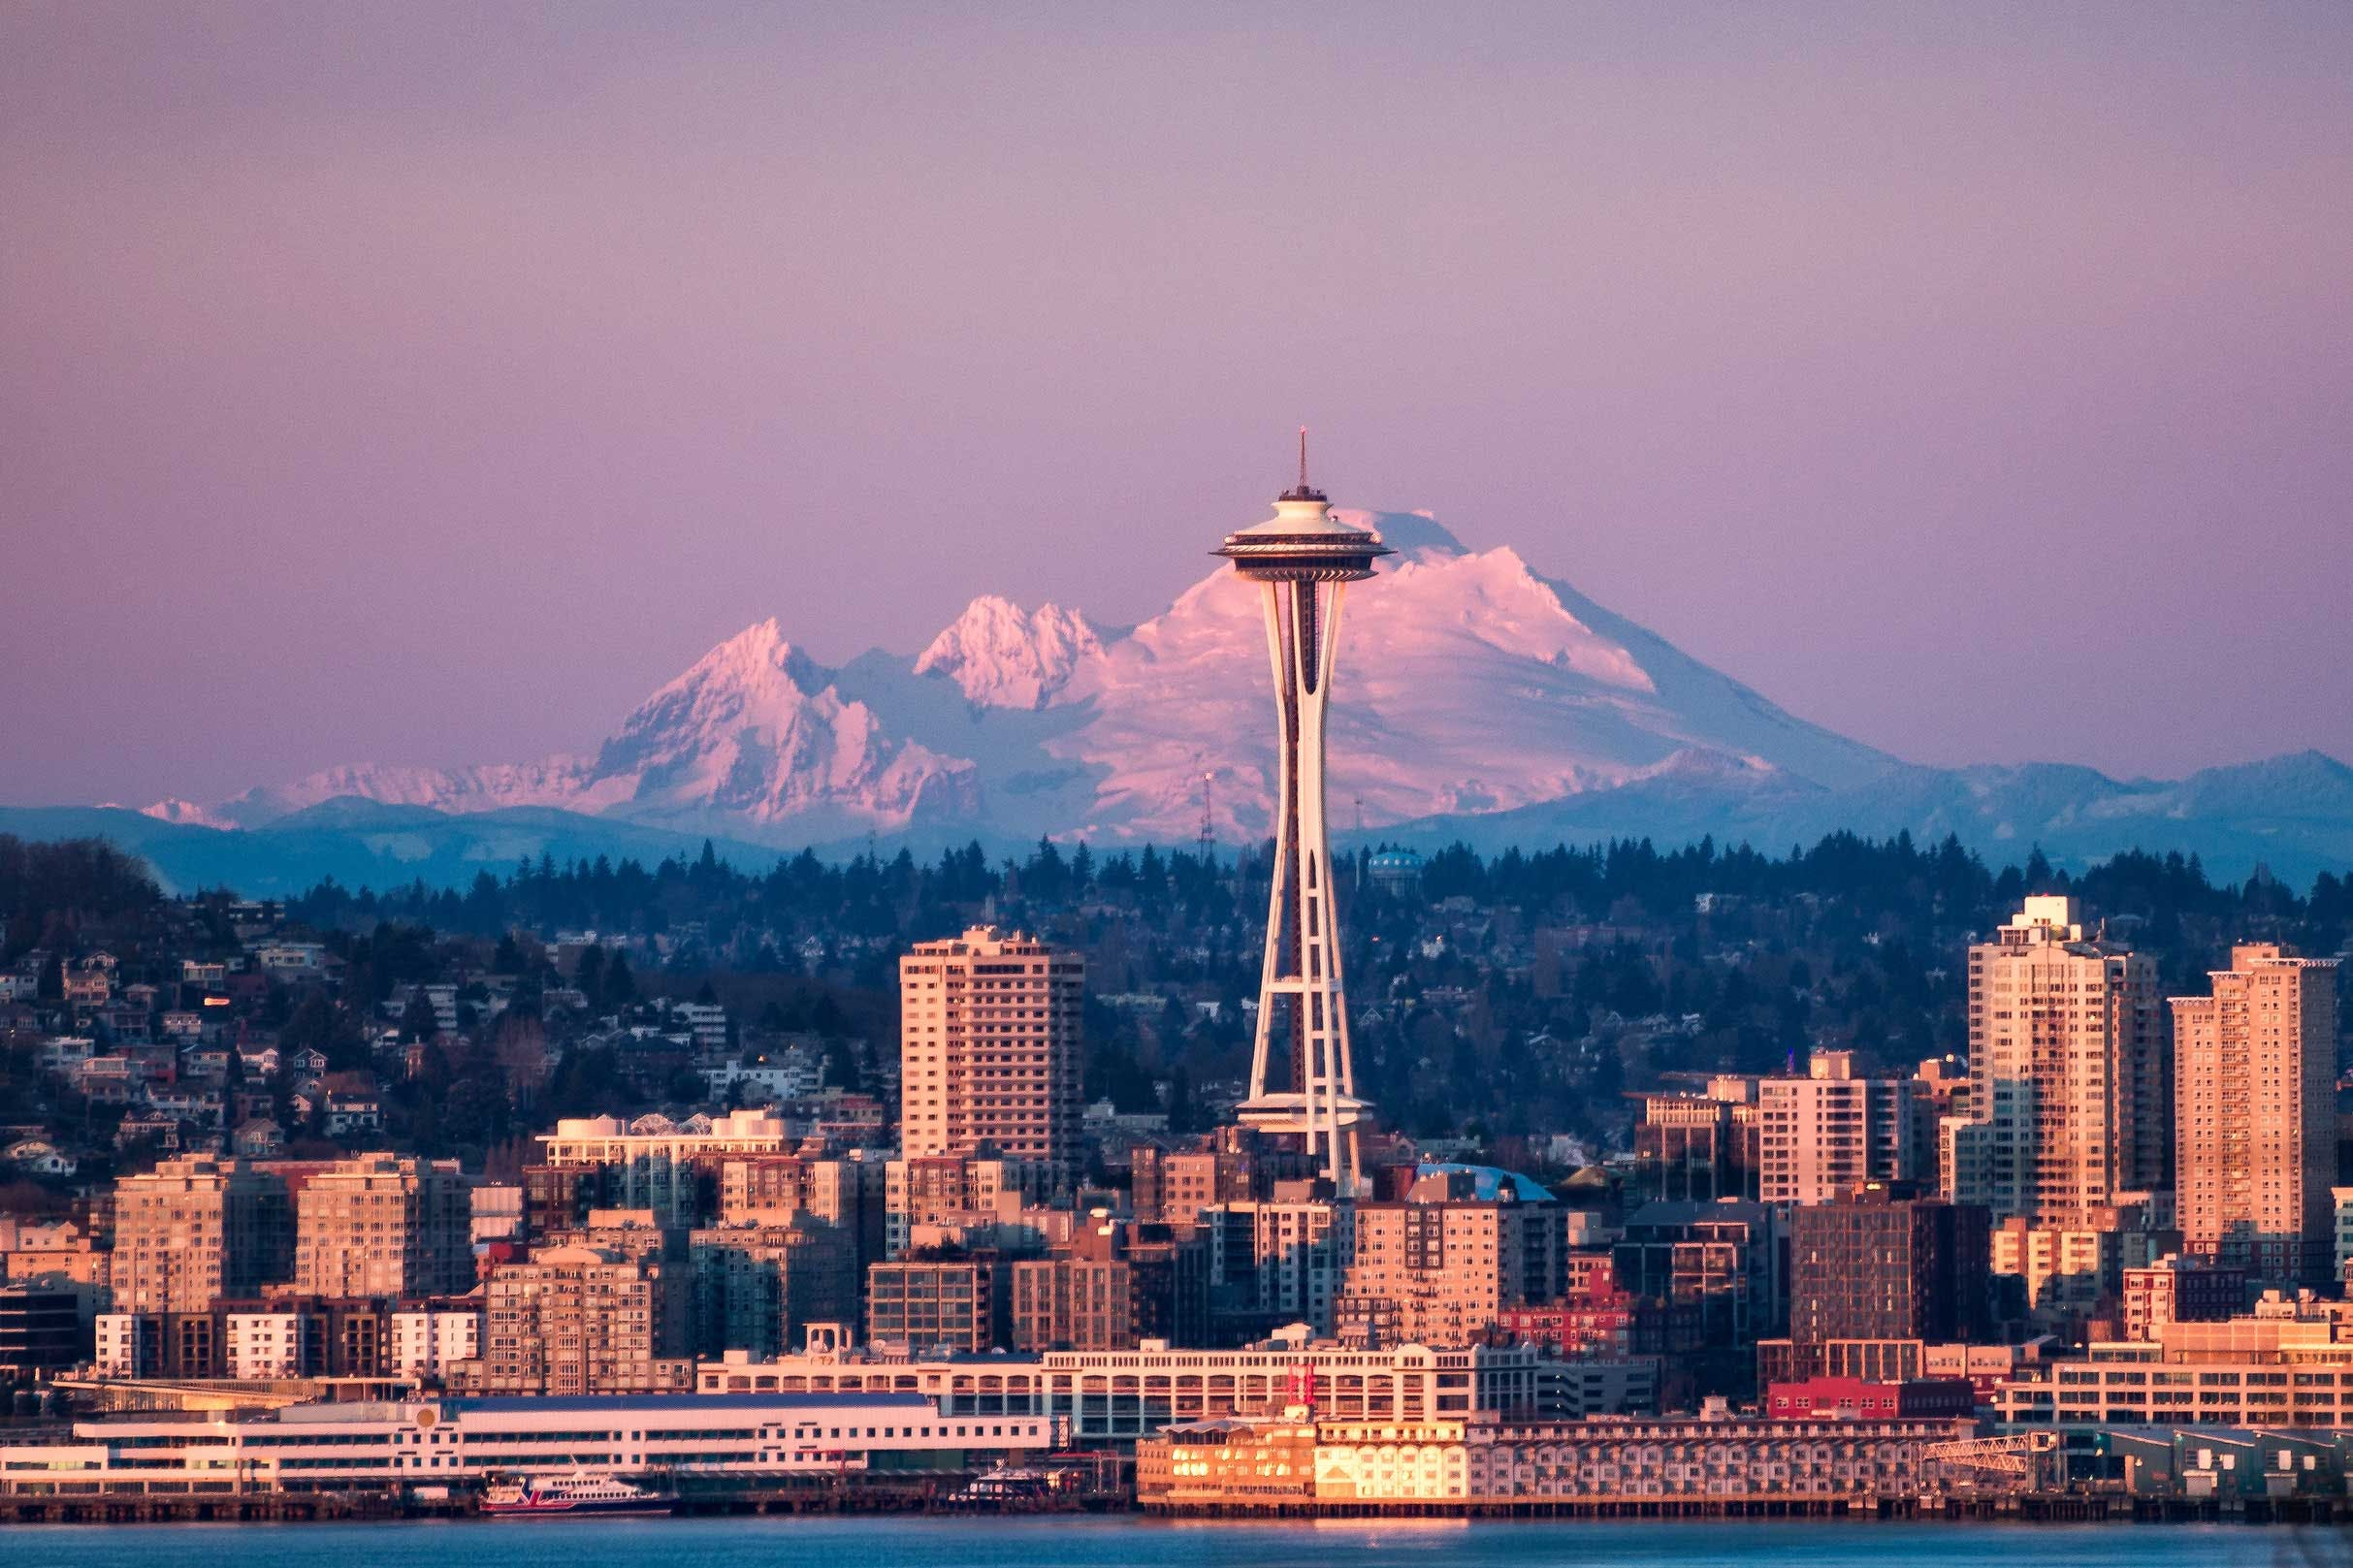 Providence Mount St Vincent view of Space Needle & Mount Baker